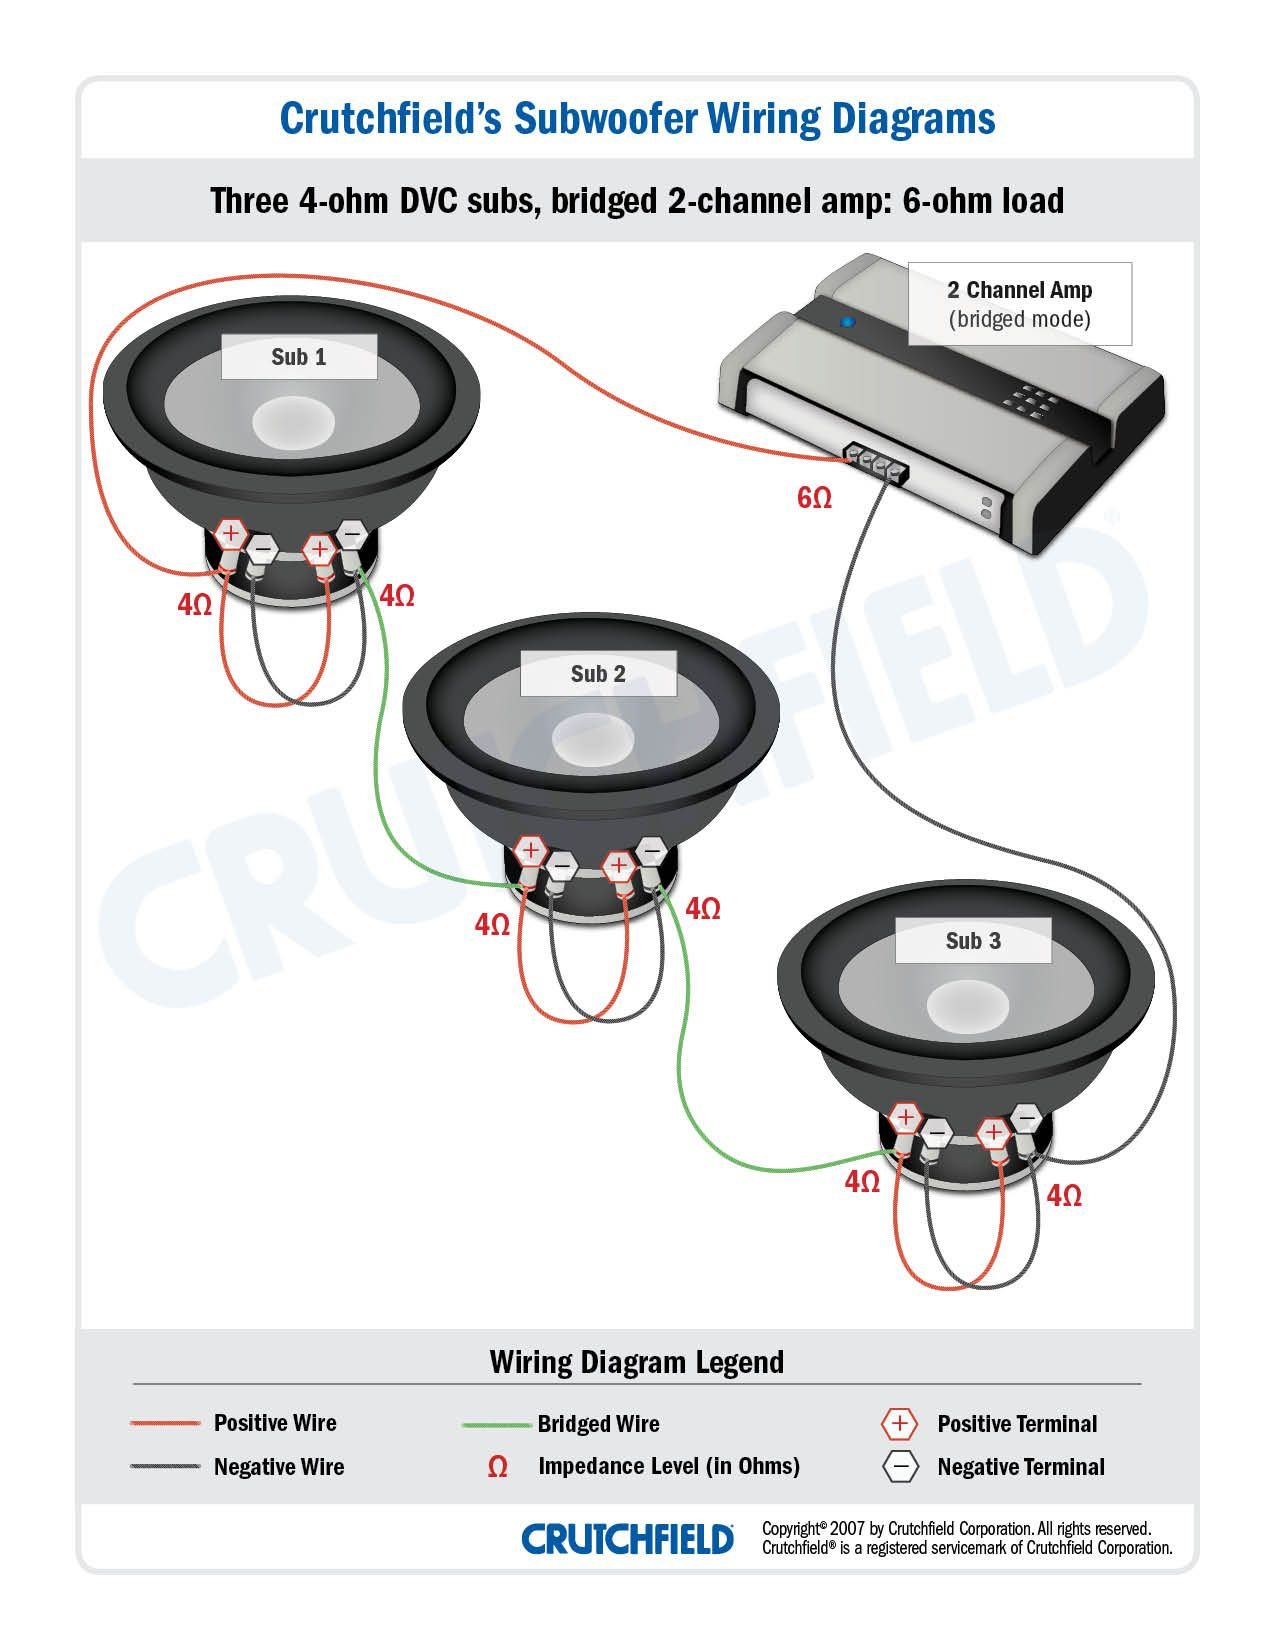 top 10 subwoofer wiring diagram free download 3 dvc 4 ohm 2 ch and rh pinterest com 6 ohm dvc subwoofer wiring diagram